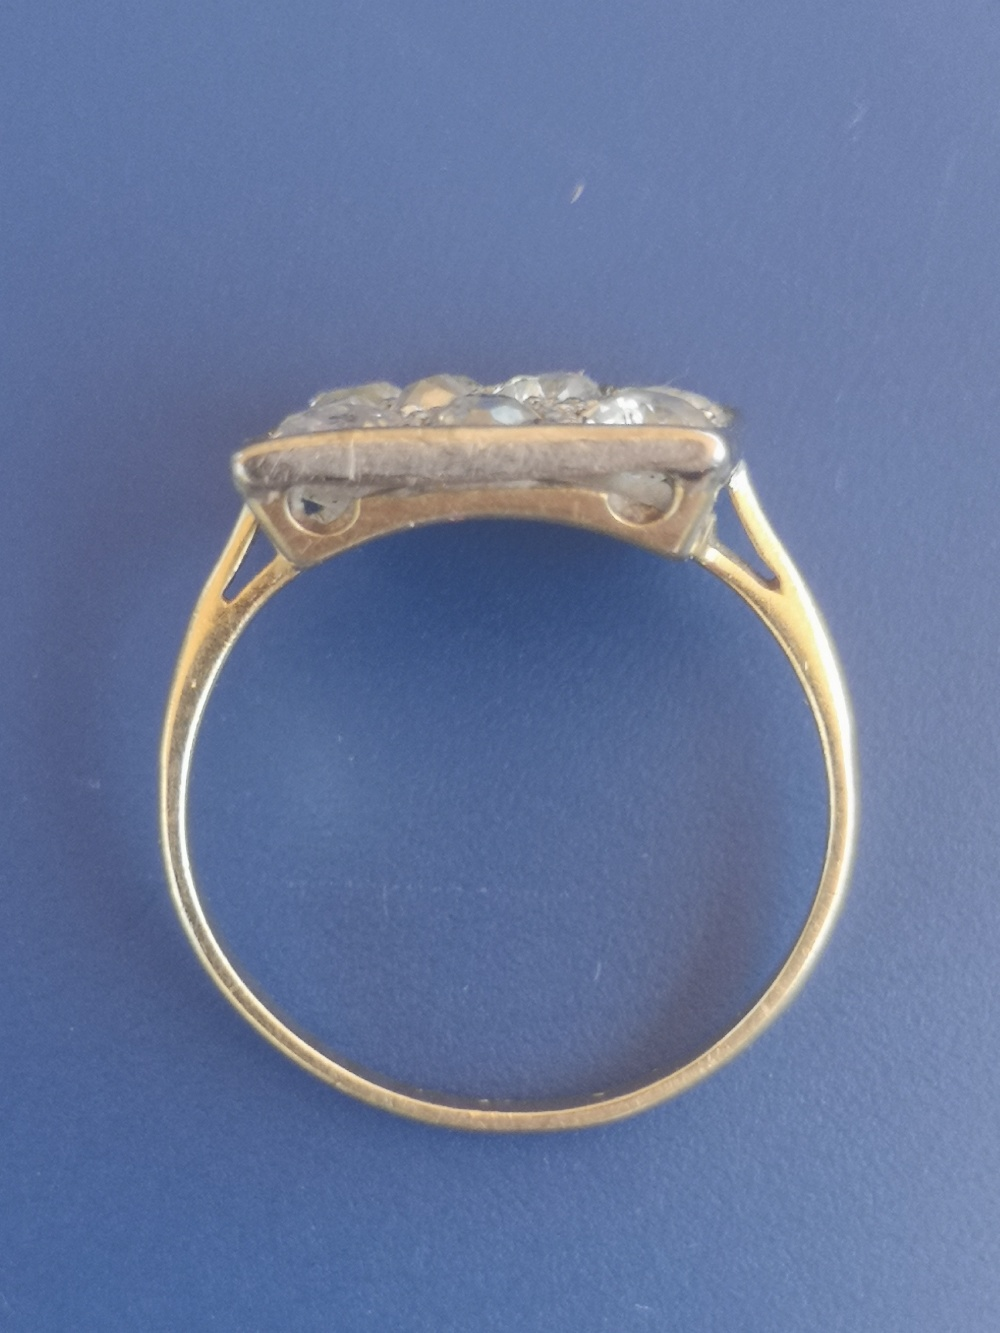 A diamond dress ring having a square pave setting on yellow metal shank. Finger size L. - Image 5 of 5